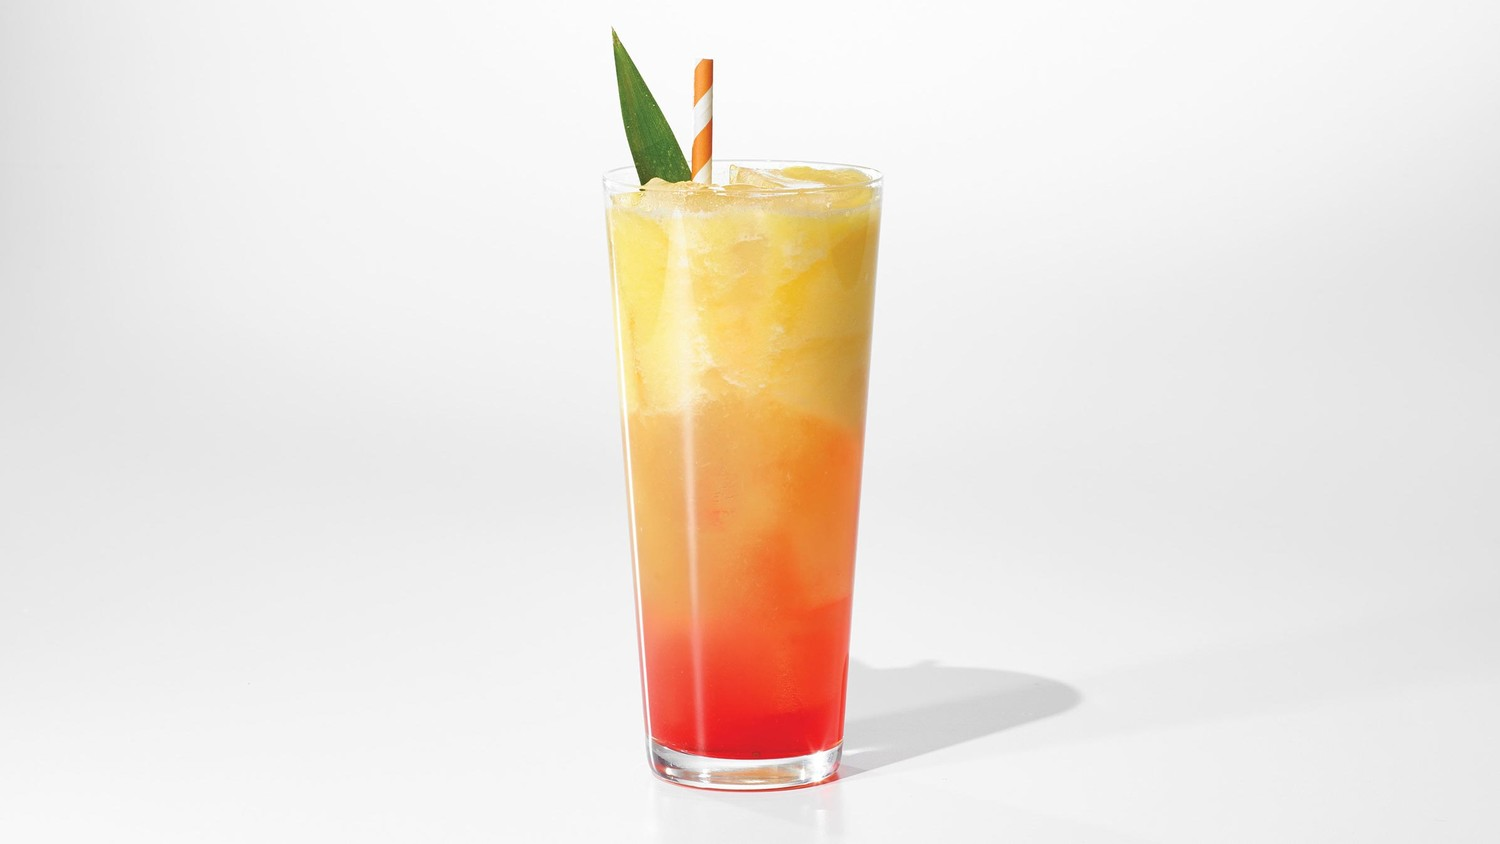 Pineapple-Guava Mocktail